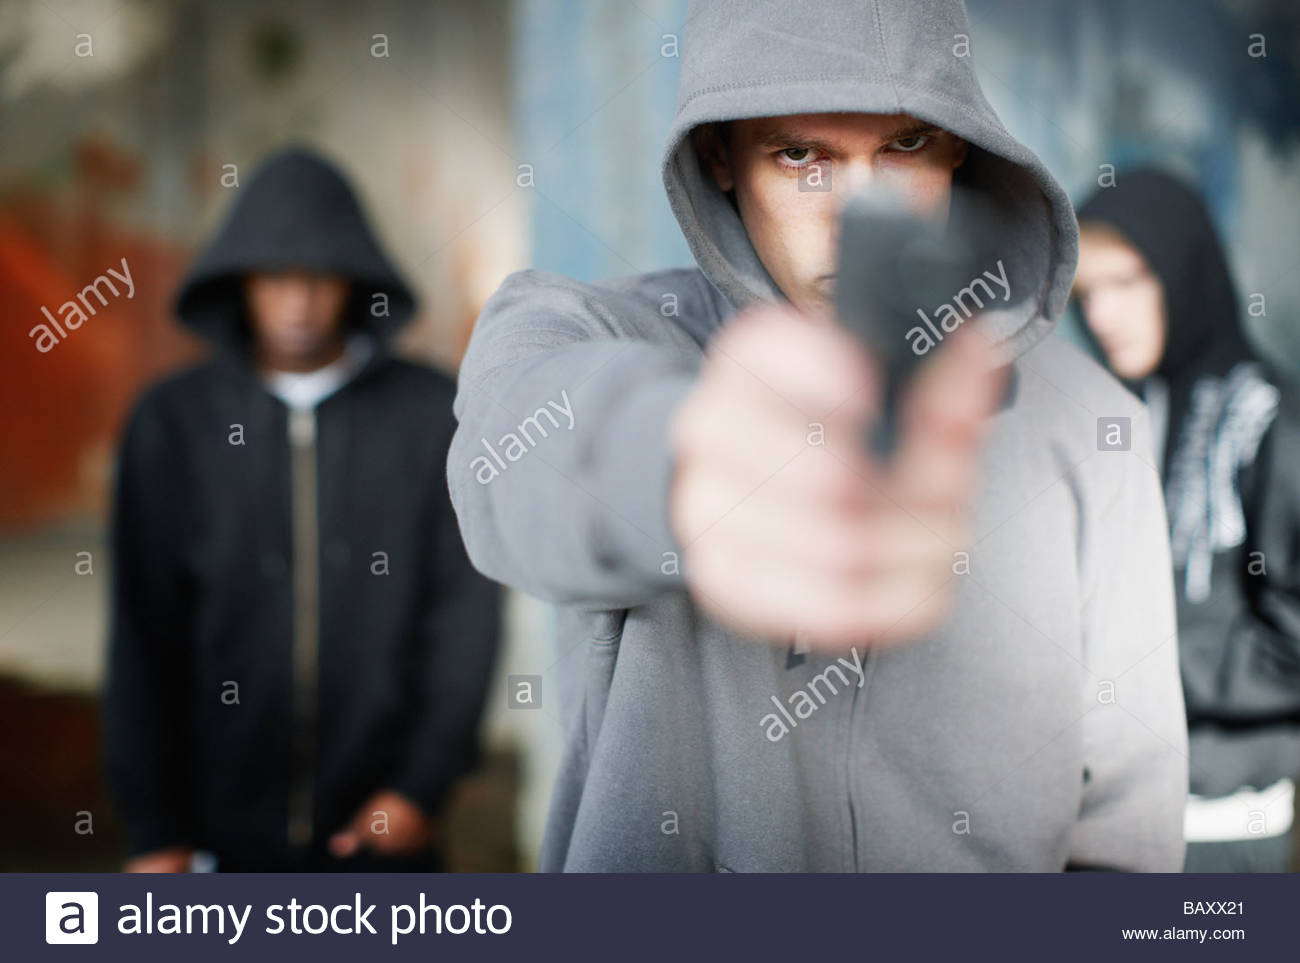 Man with gun pointed at viewer - Stock Image